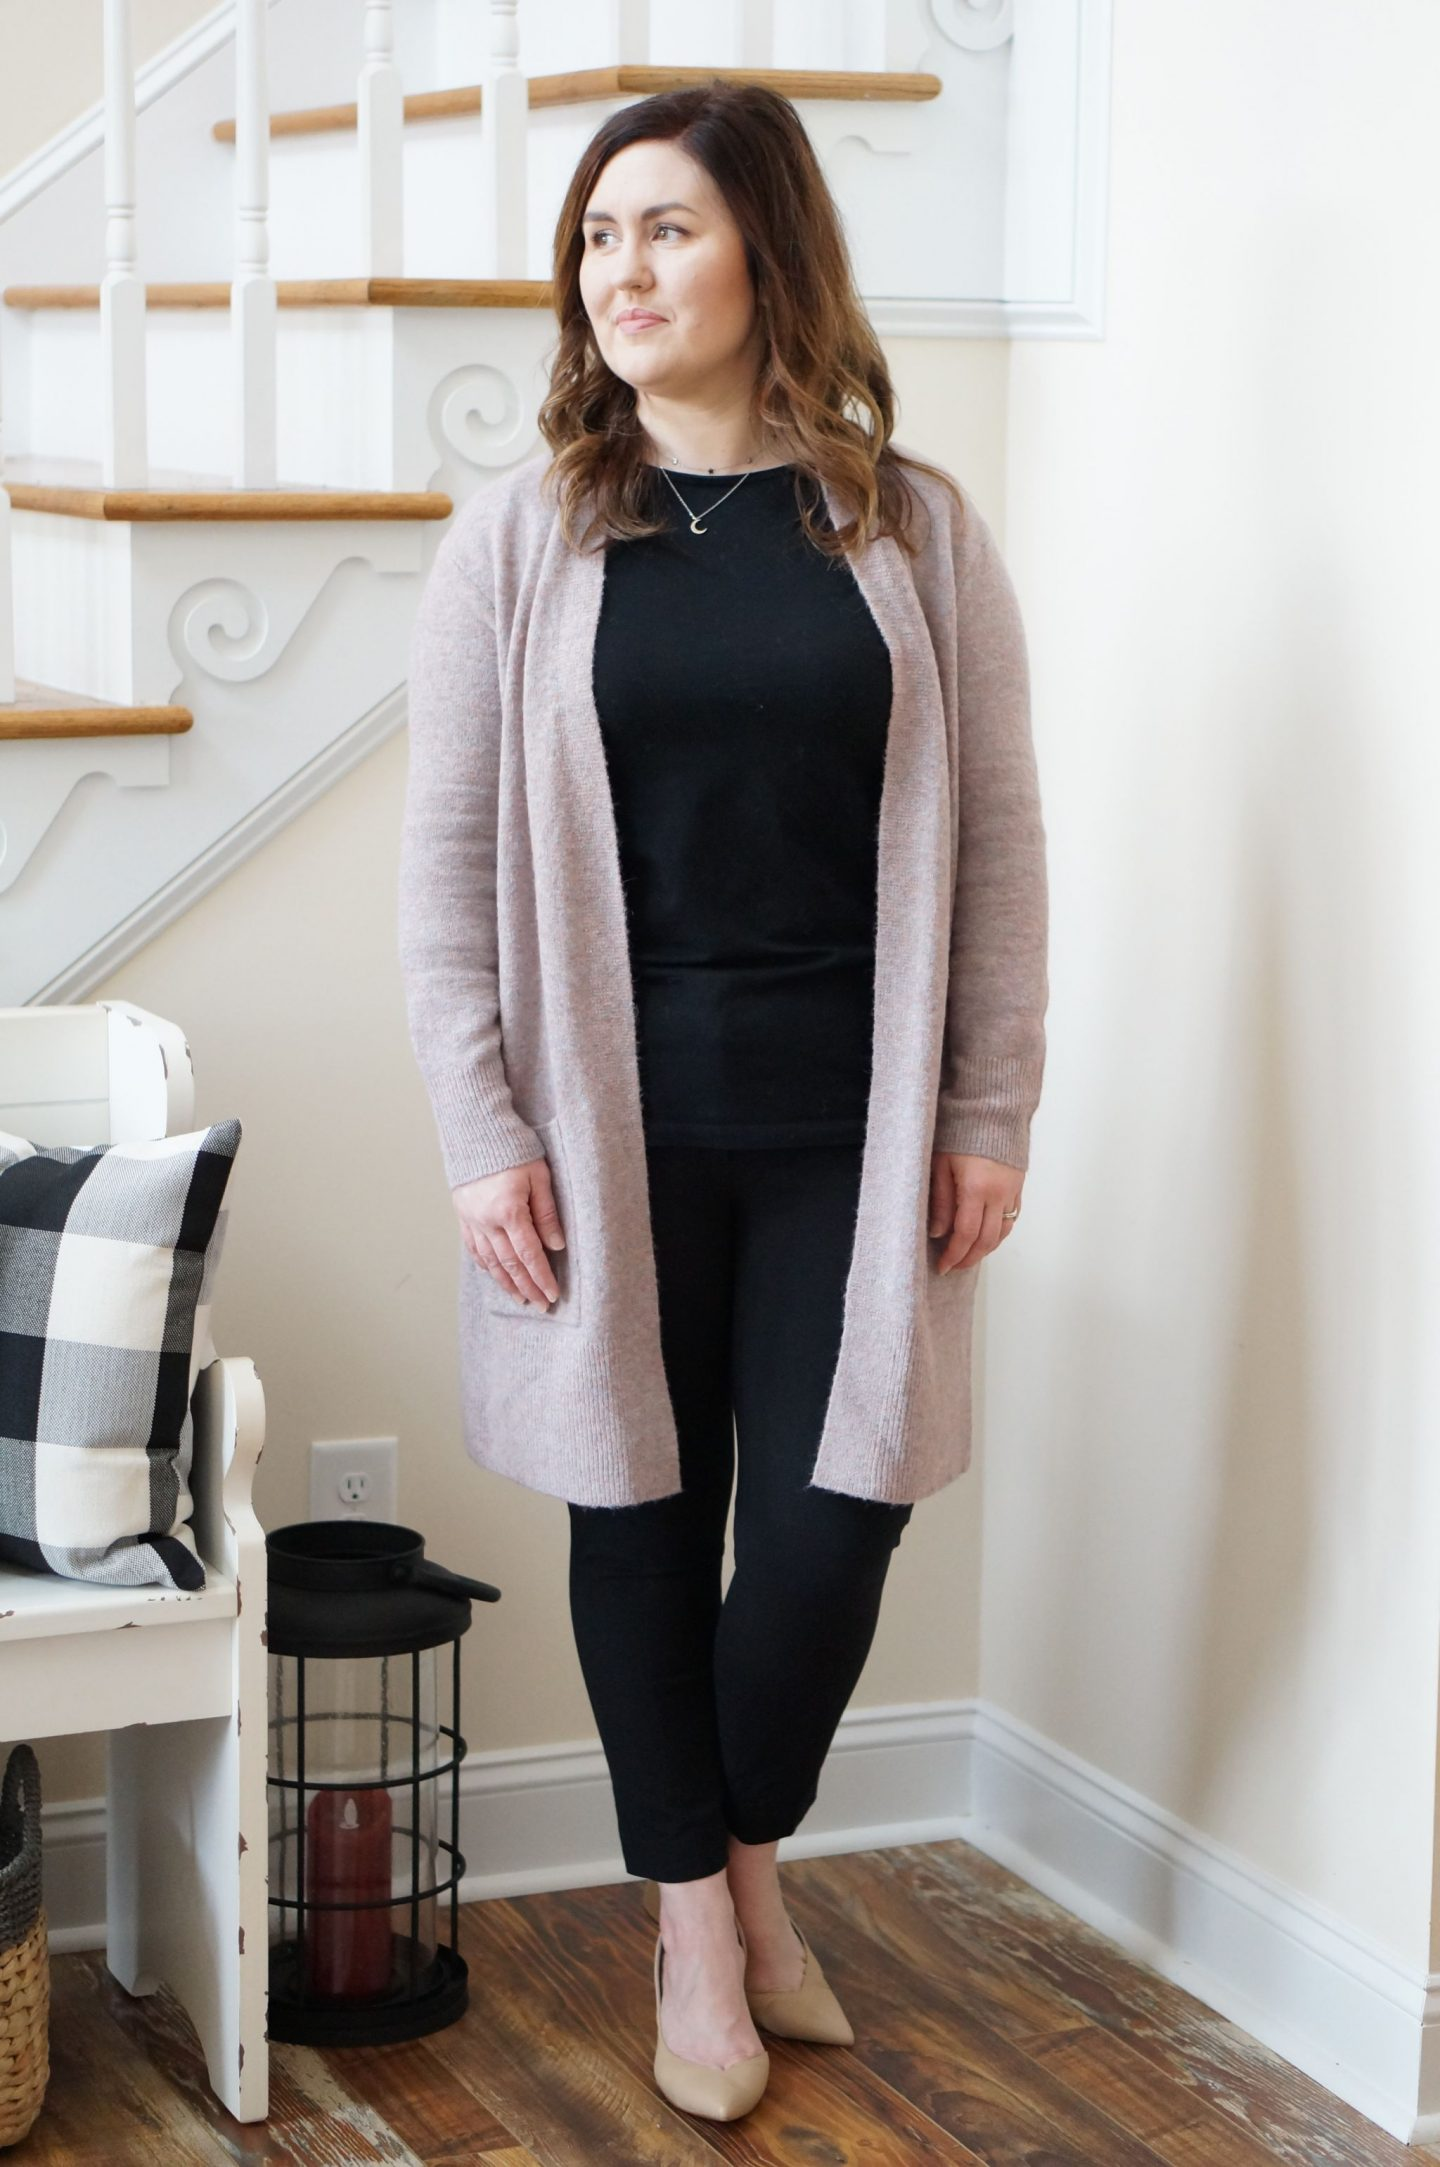 North Carolina style blogger Rebecca Lately shares a simple work outfit featuring a moon and star necklace. Check it out for work inspo!